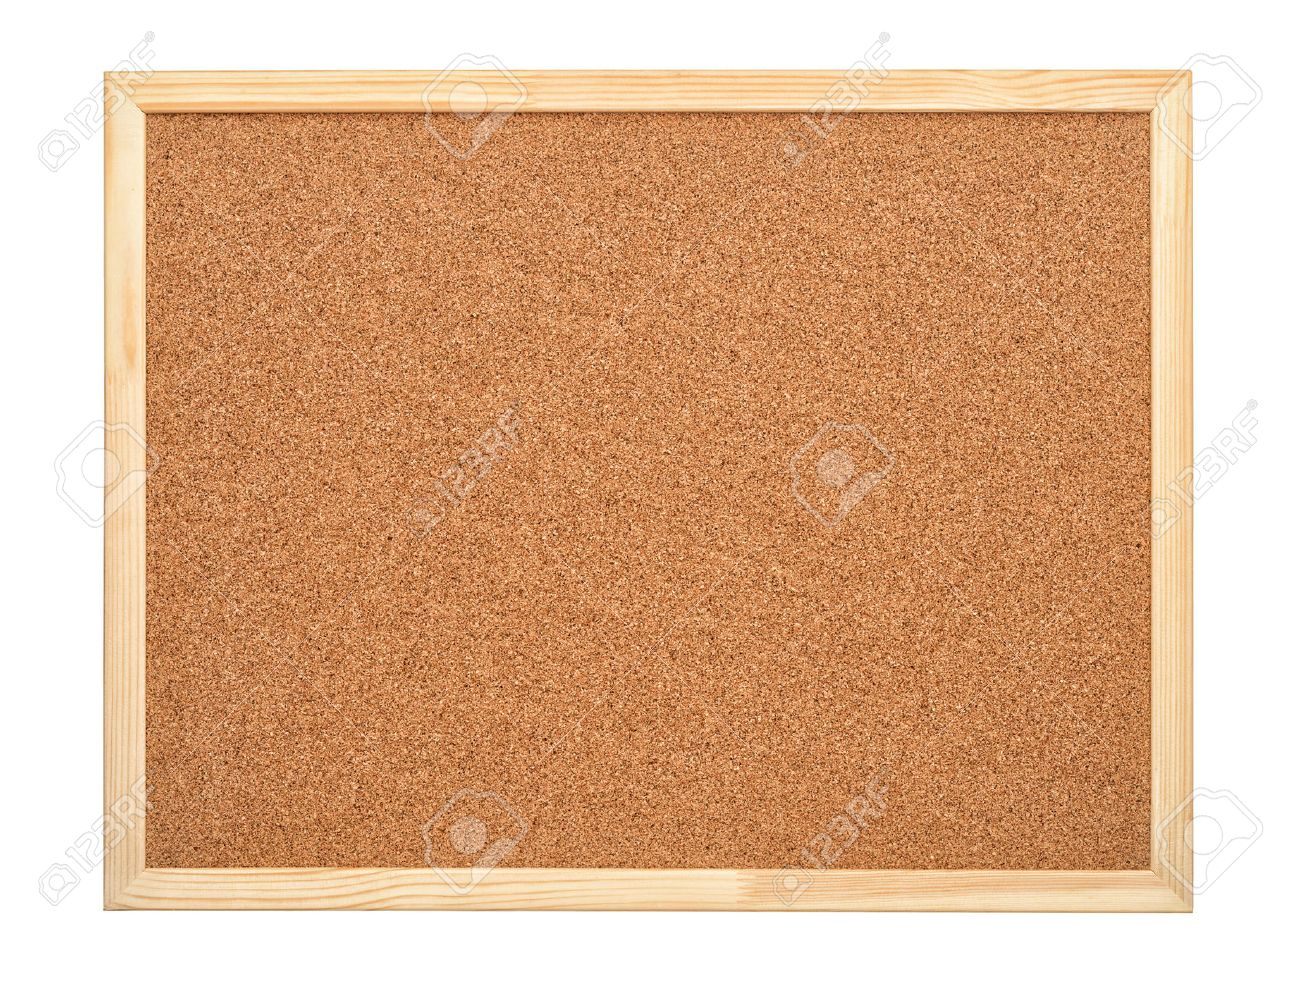 Blank cork board with wood frame isolated on white - 57953984